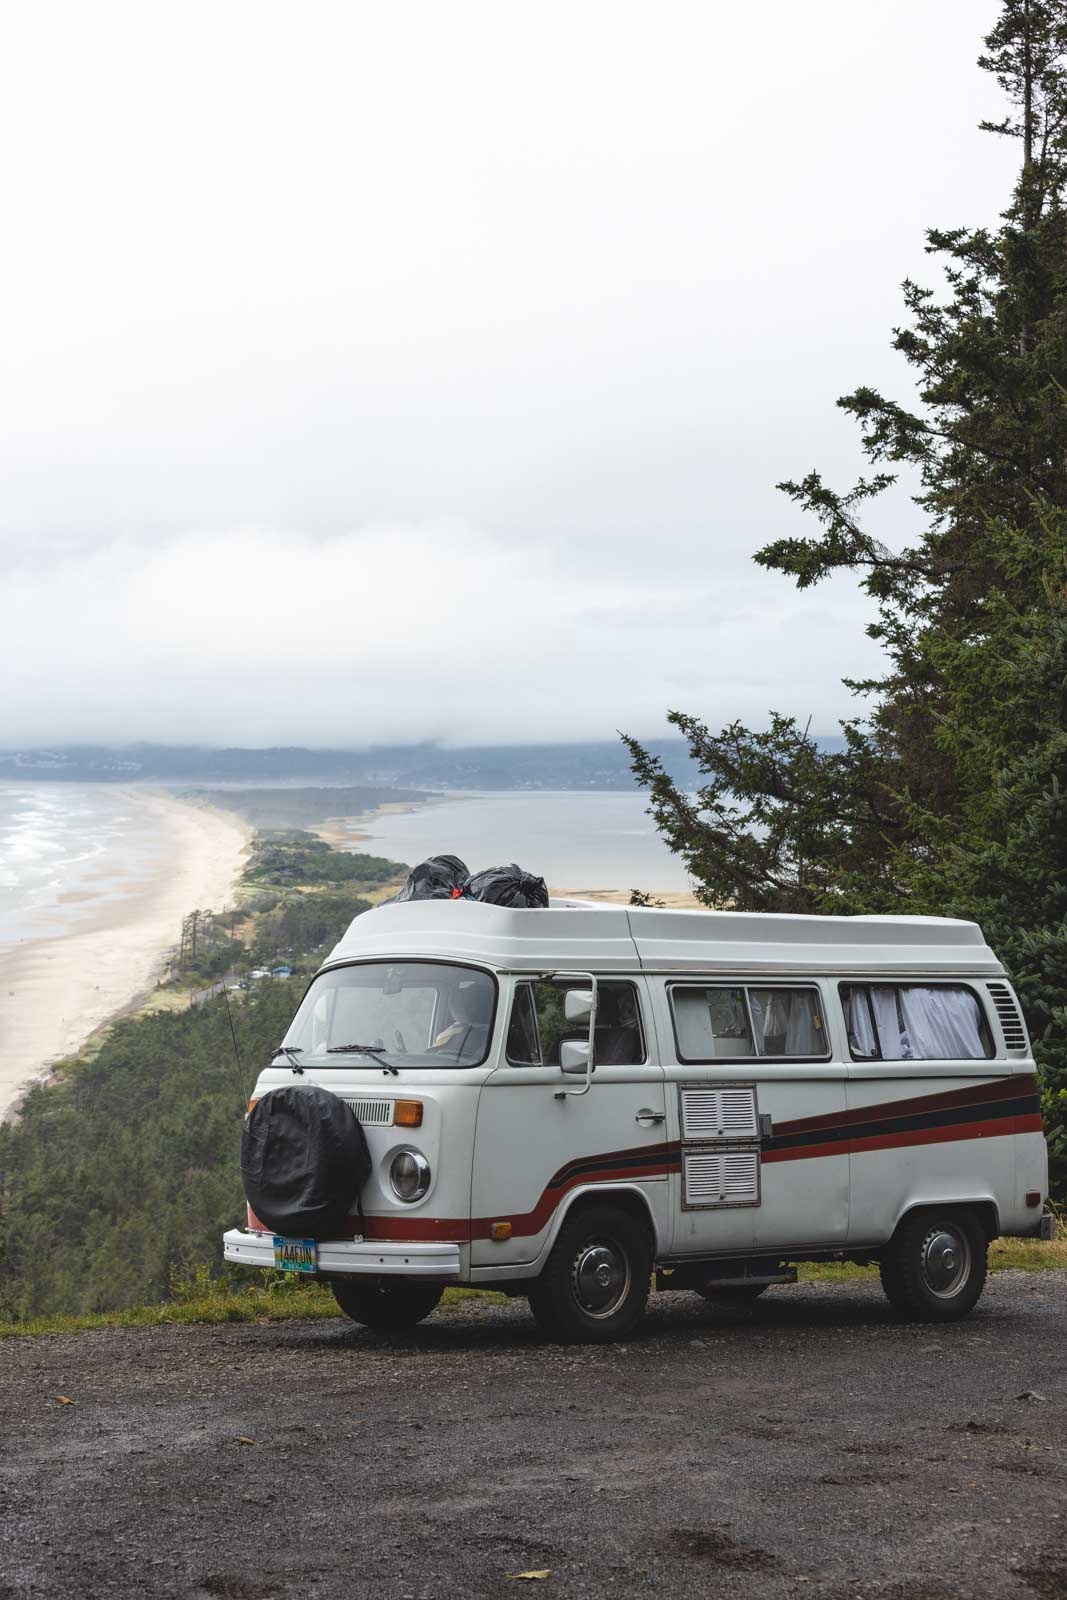 VW van in front of beach and sea view at Cape Lookout - one of the Oregon Coast State Parks